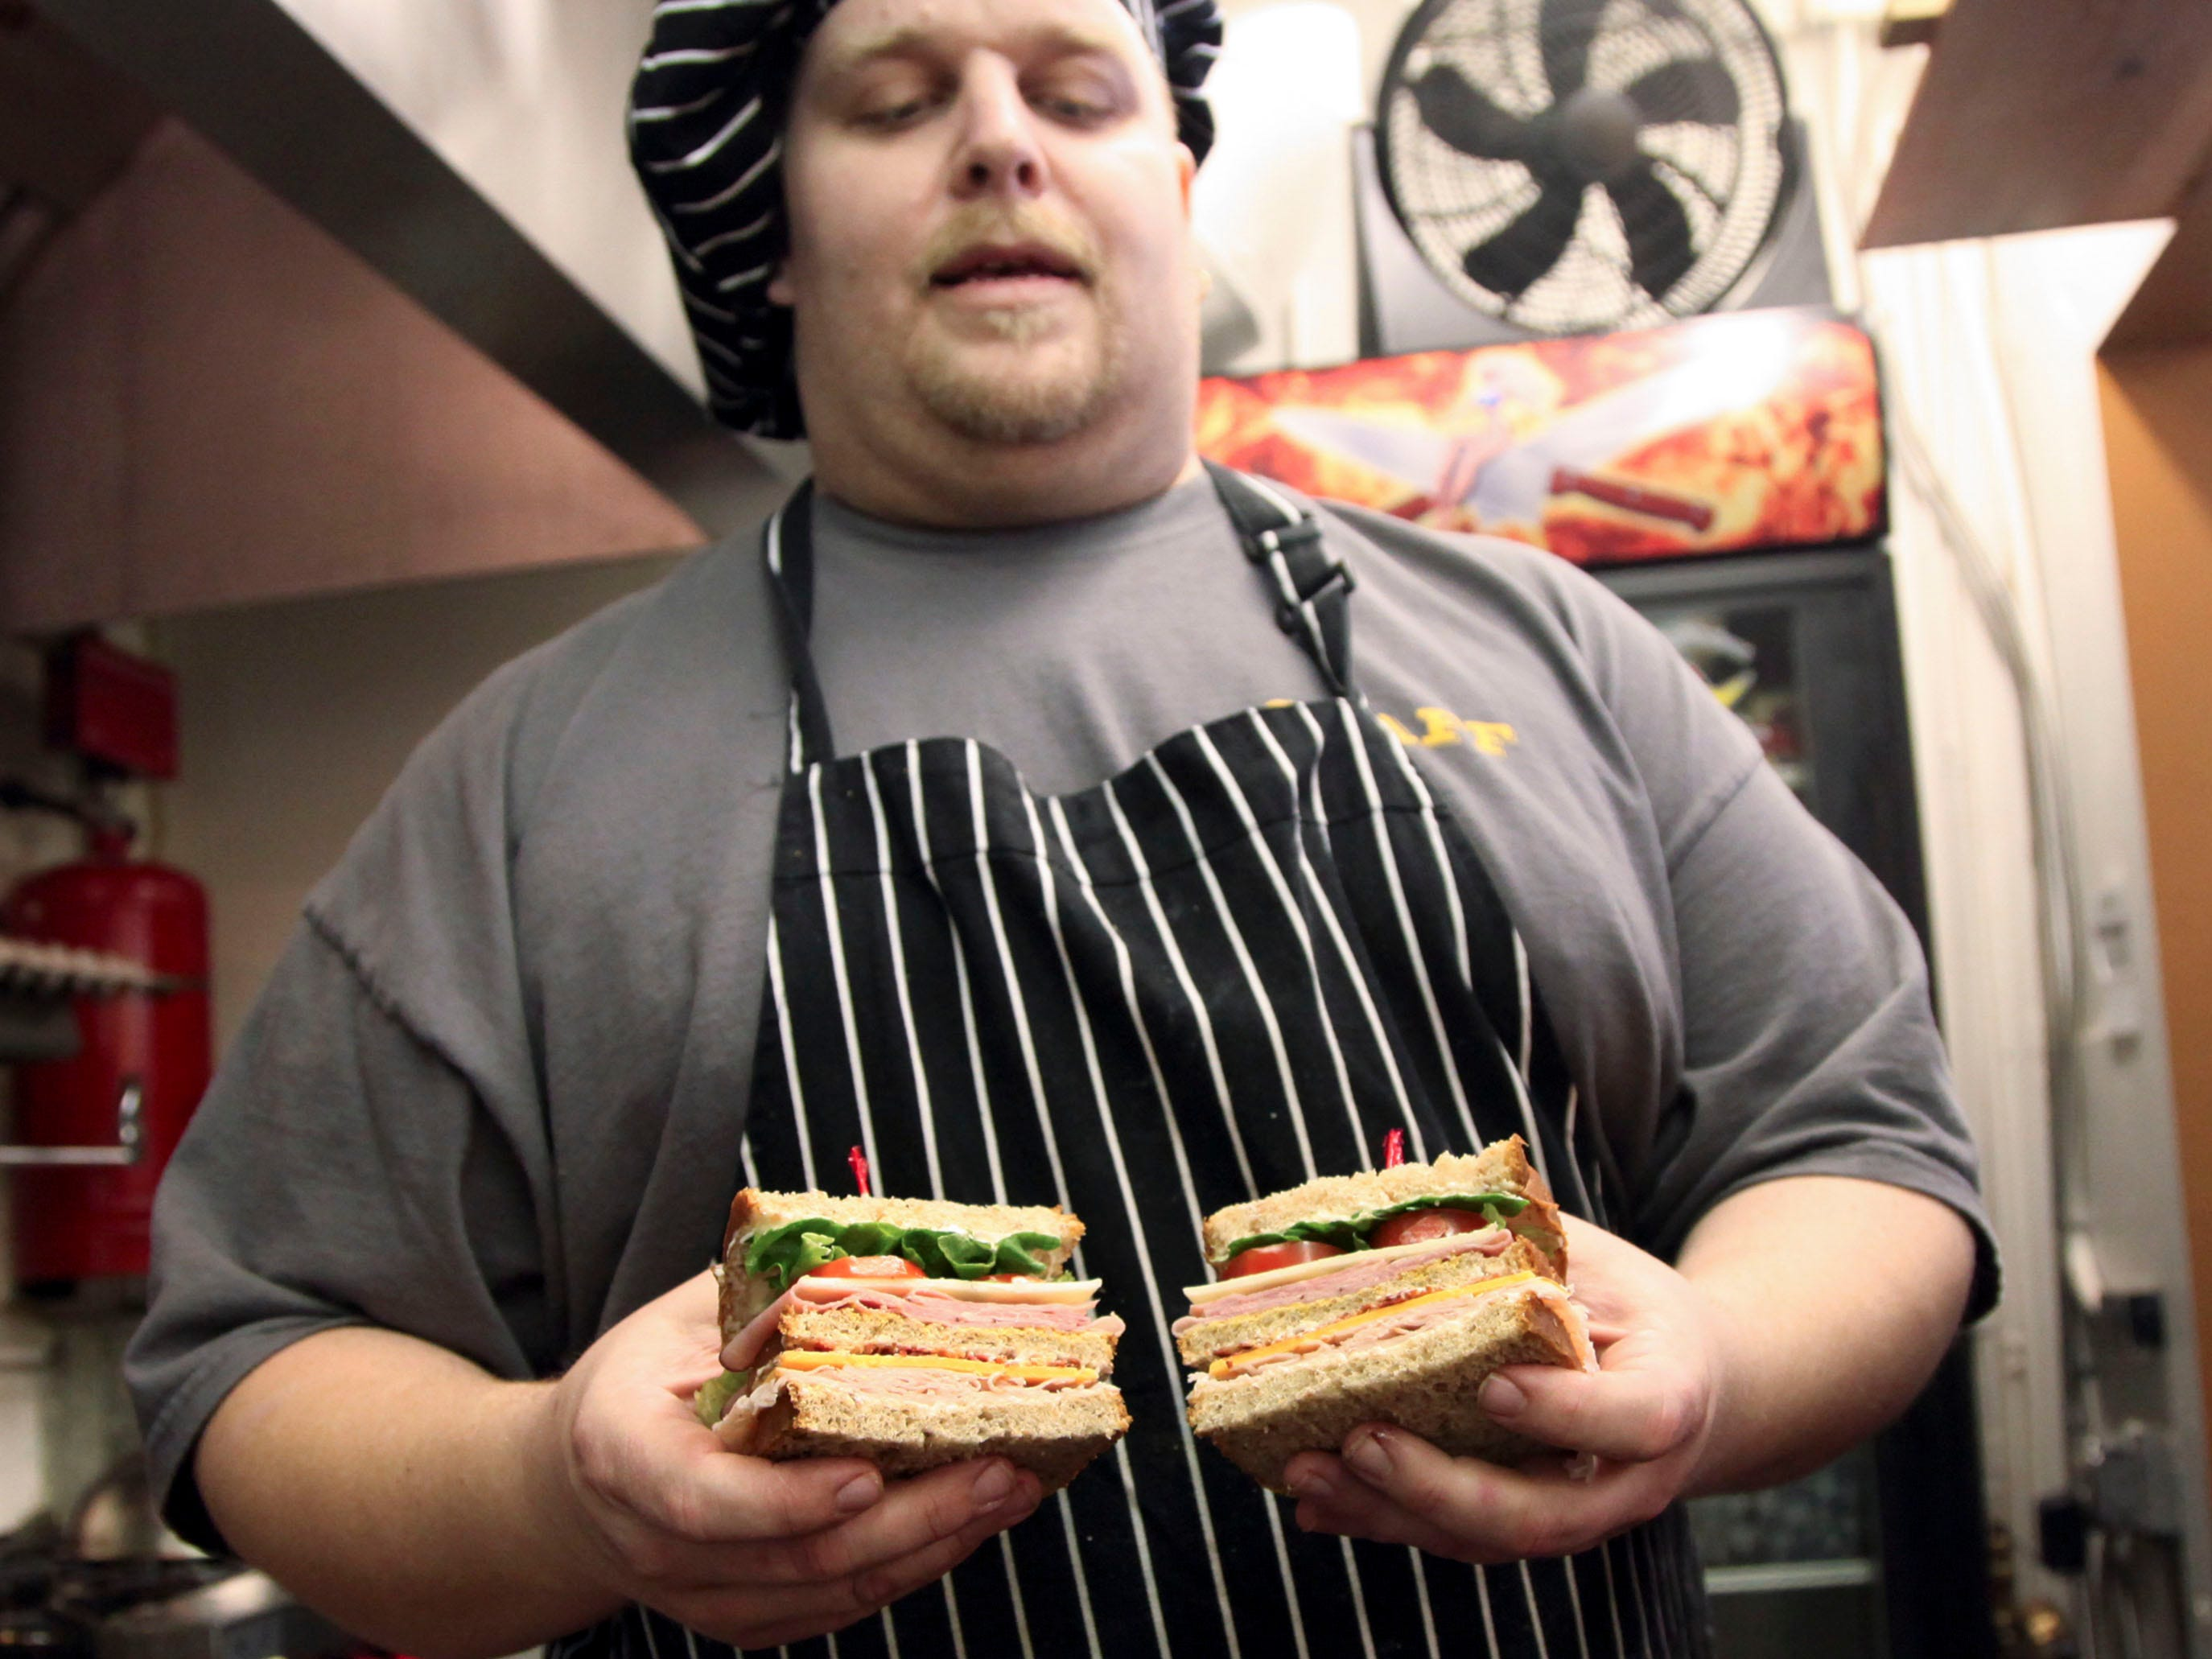 Josh Headrick holds a King of Clubs sandwich that hasturkey, ham, cheese and bacon at Mrs. Goodstuff's Cafe on E. Woodland Ave. Friday, Jan. 8, 2010.